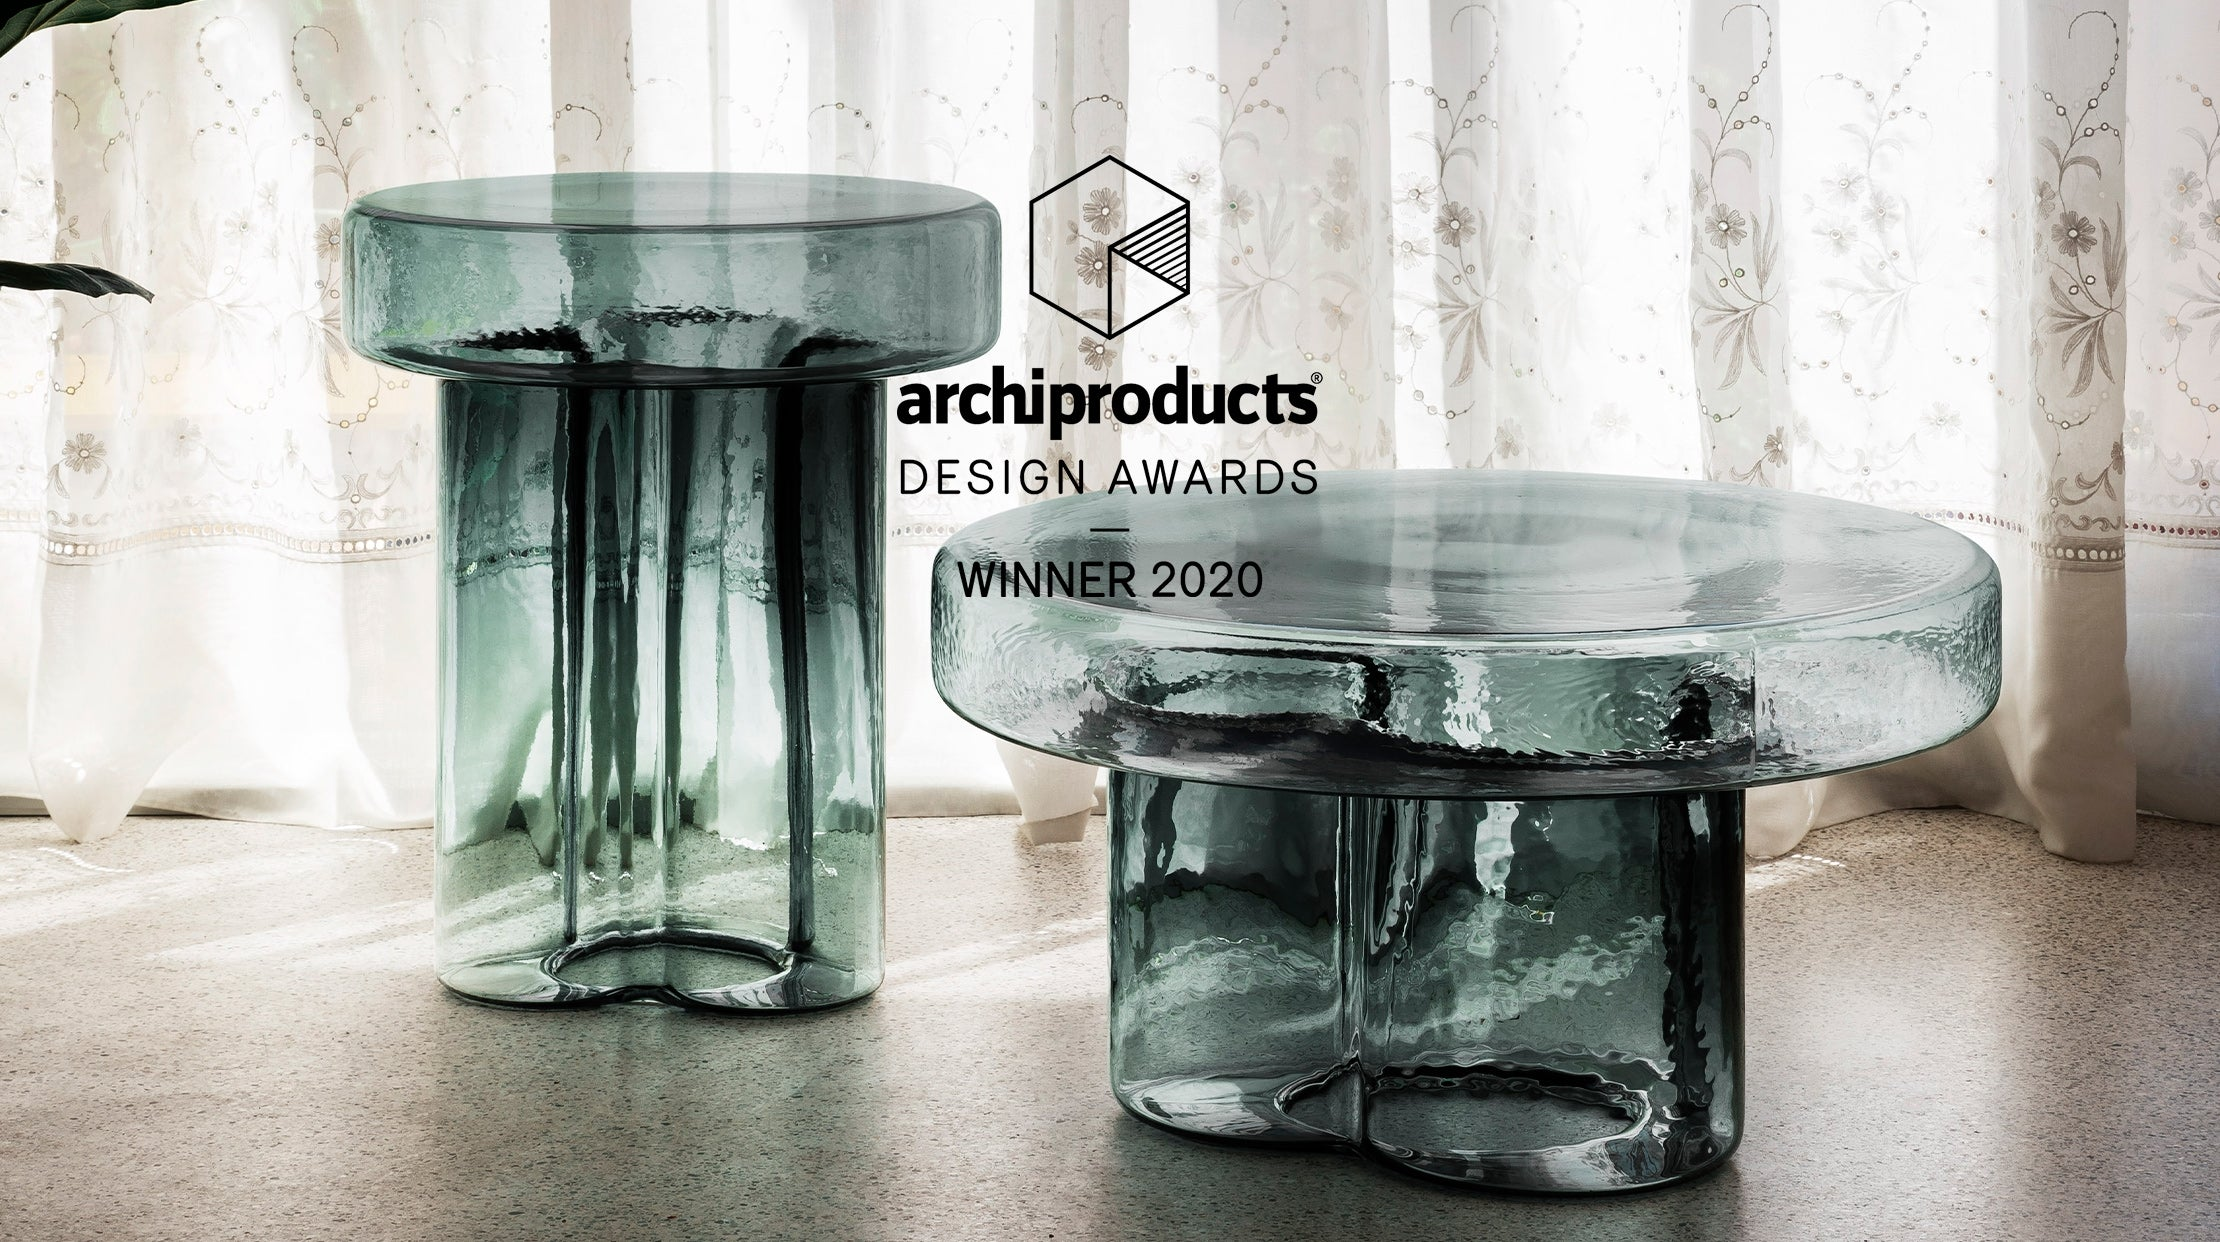 archiproducts design award 2020 soda table miniforms